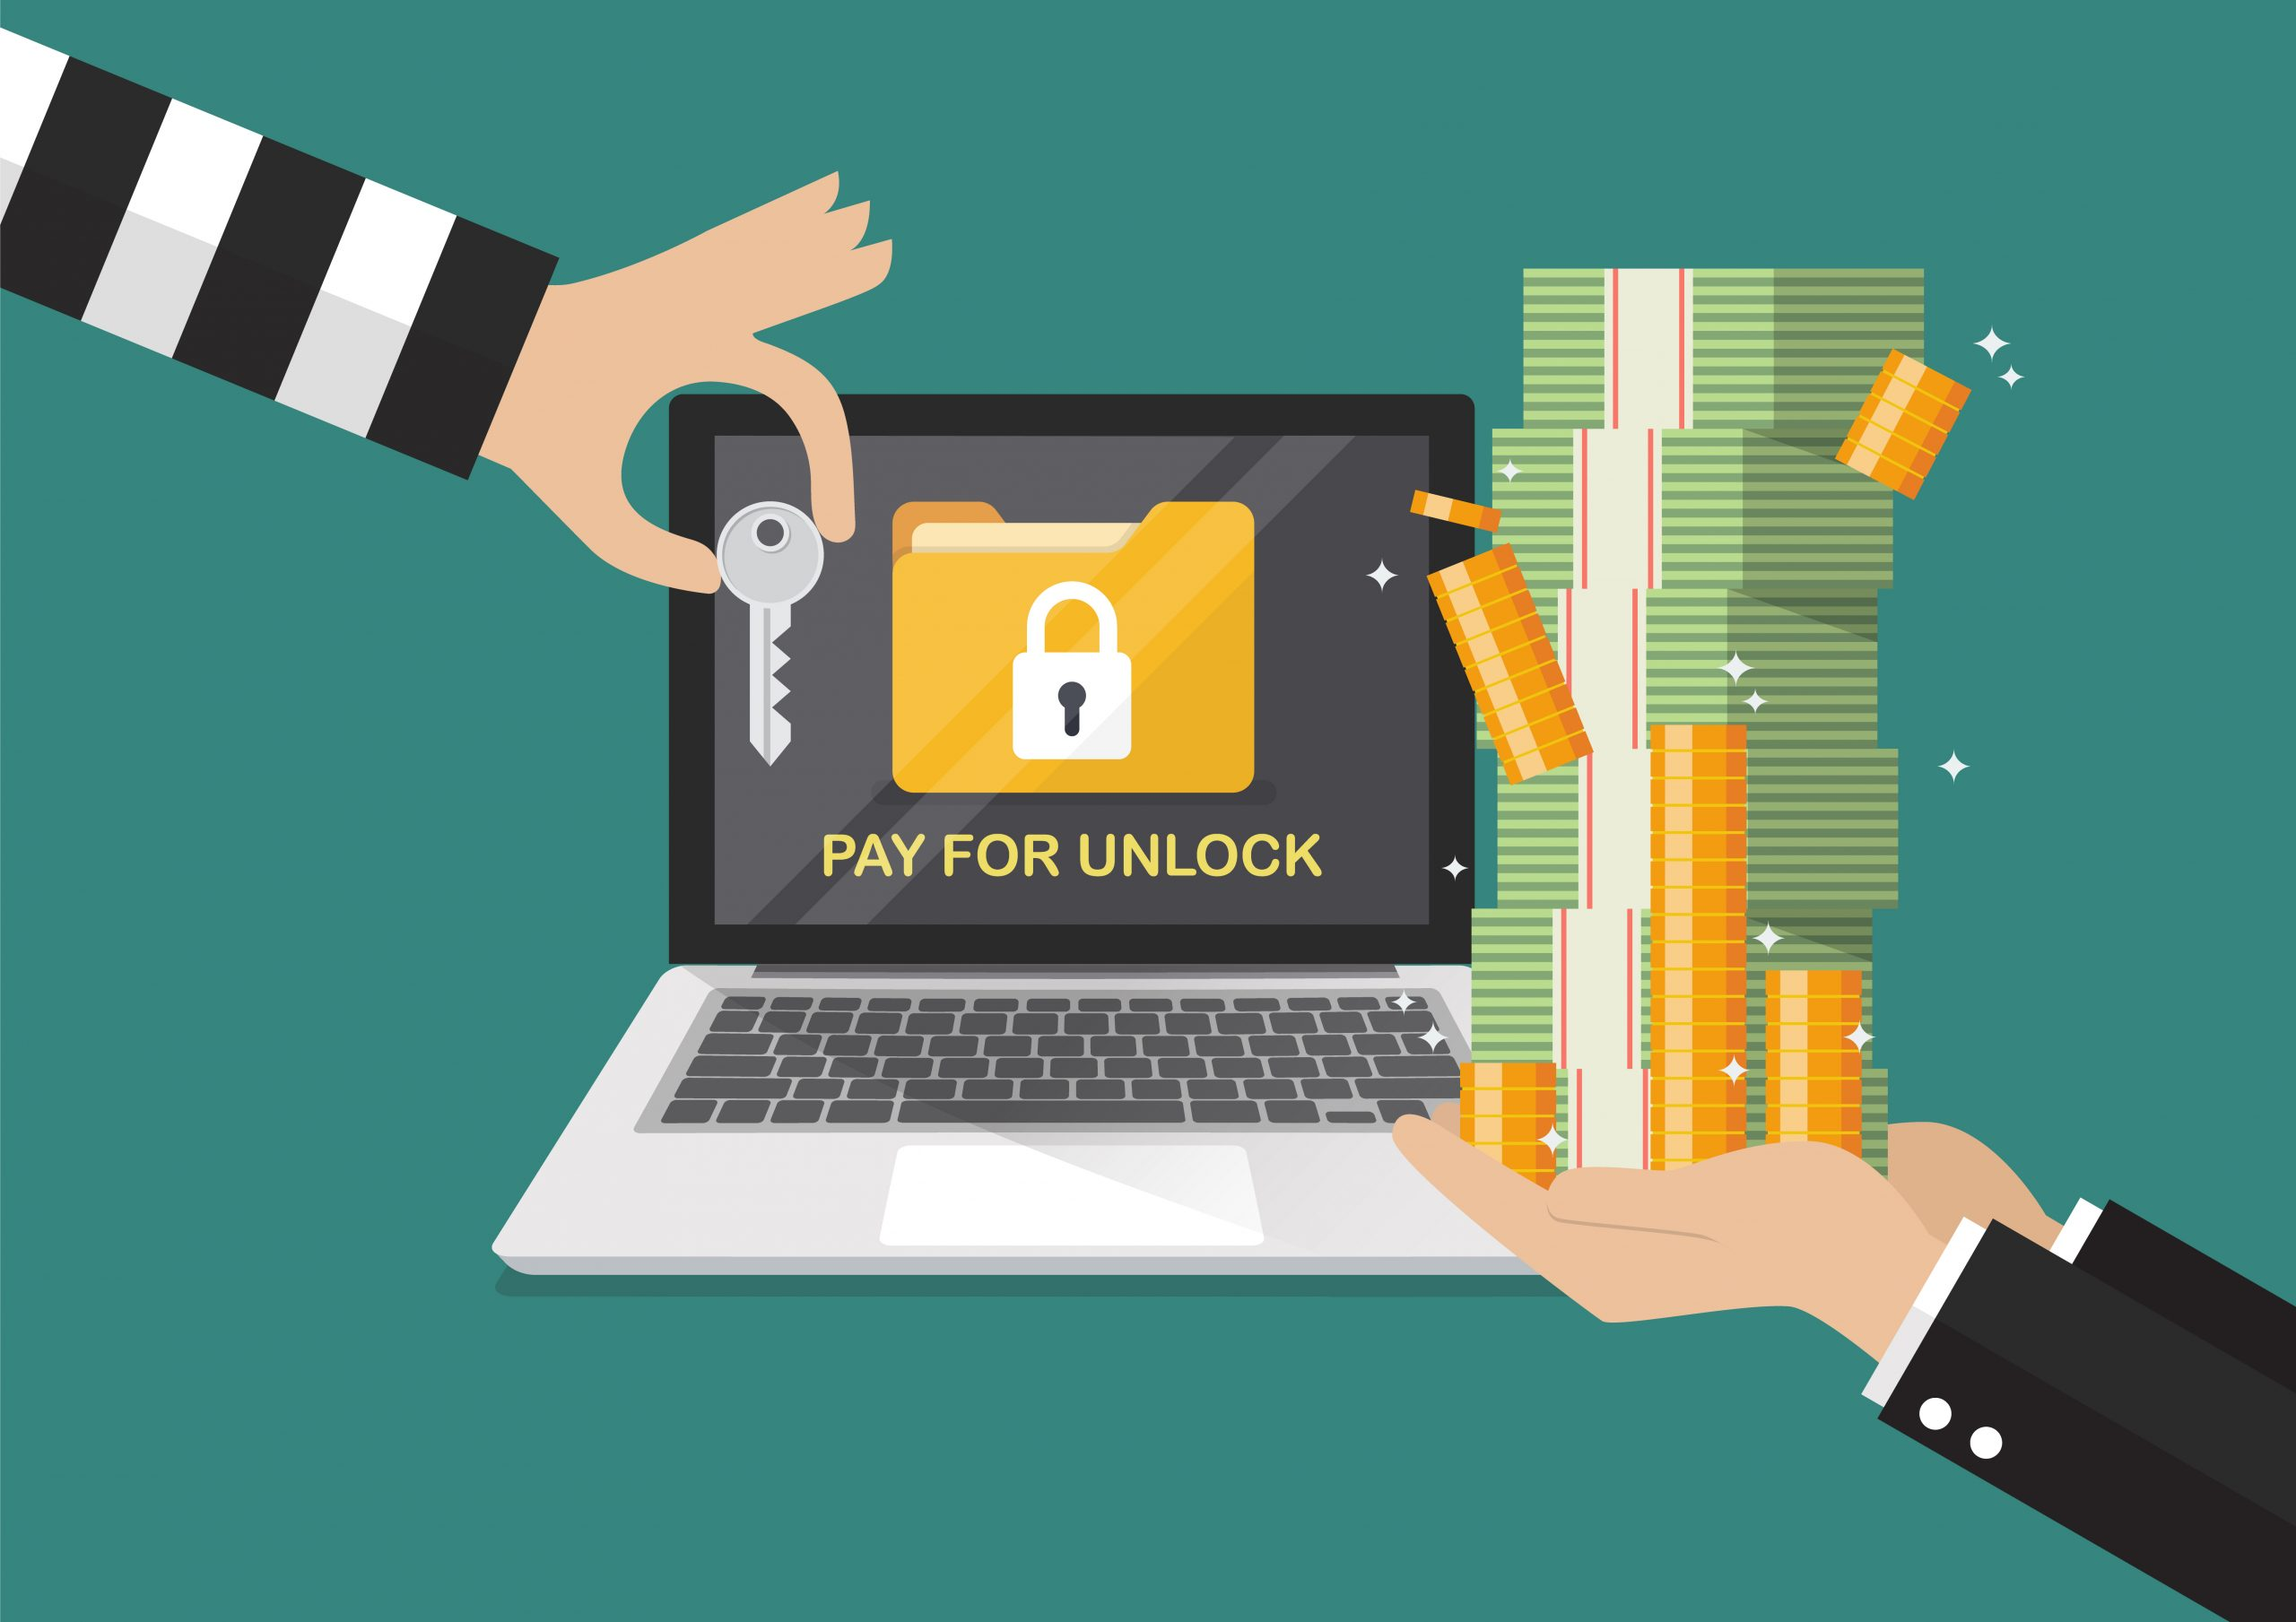 Ransomware can penetrate quickly, significantly damaging an organization